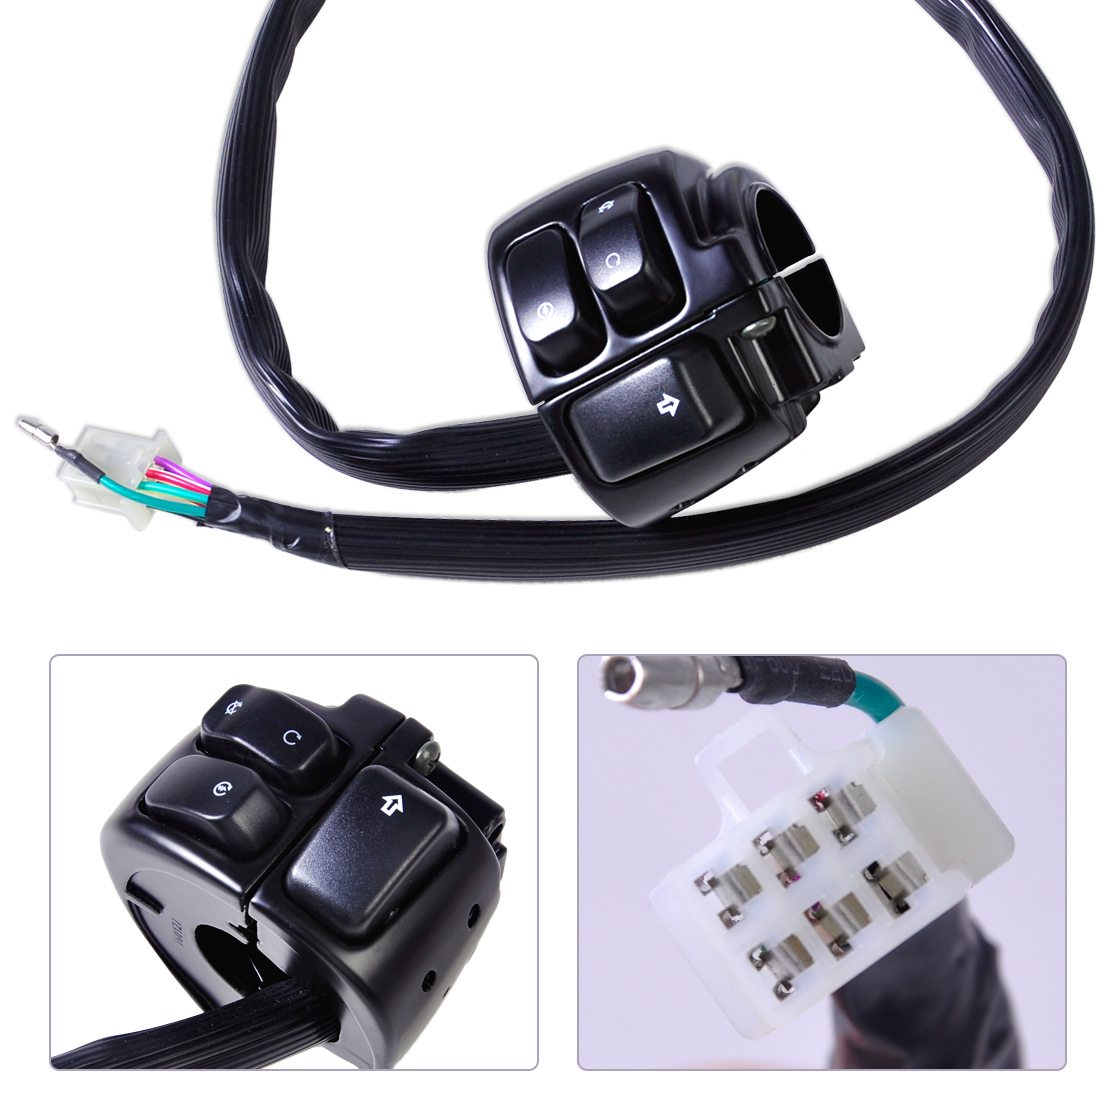 Dwcx Motorcycle 1 Handlebar Ignition Turn Signal Switch Wiring Harness For Harley Softail Dyna Sportster 1200 883 V Rod In Switches From Blinker